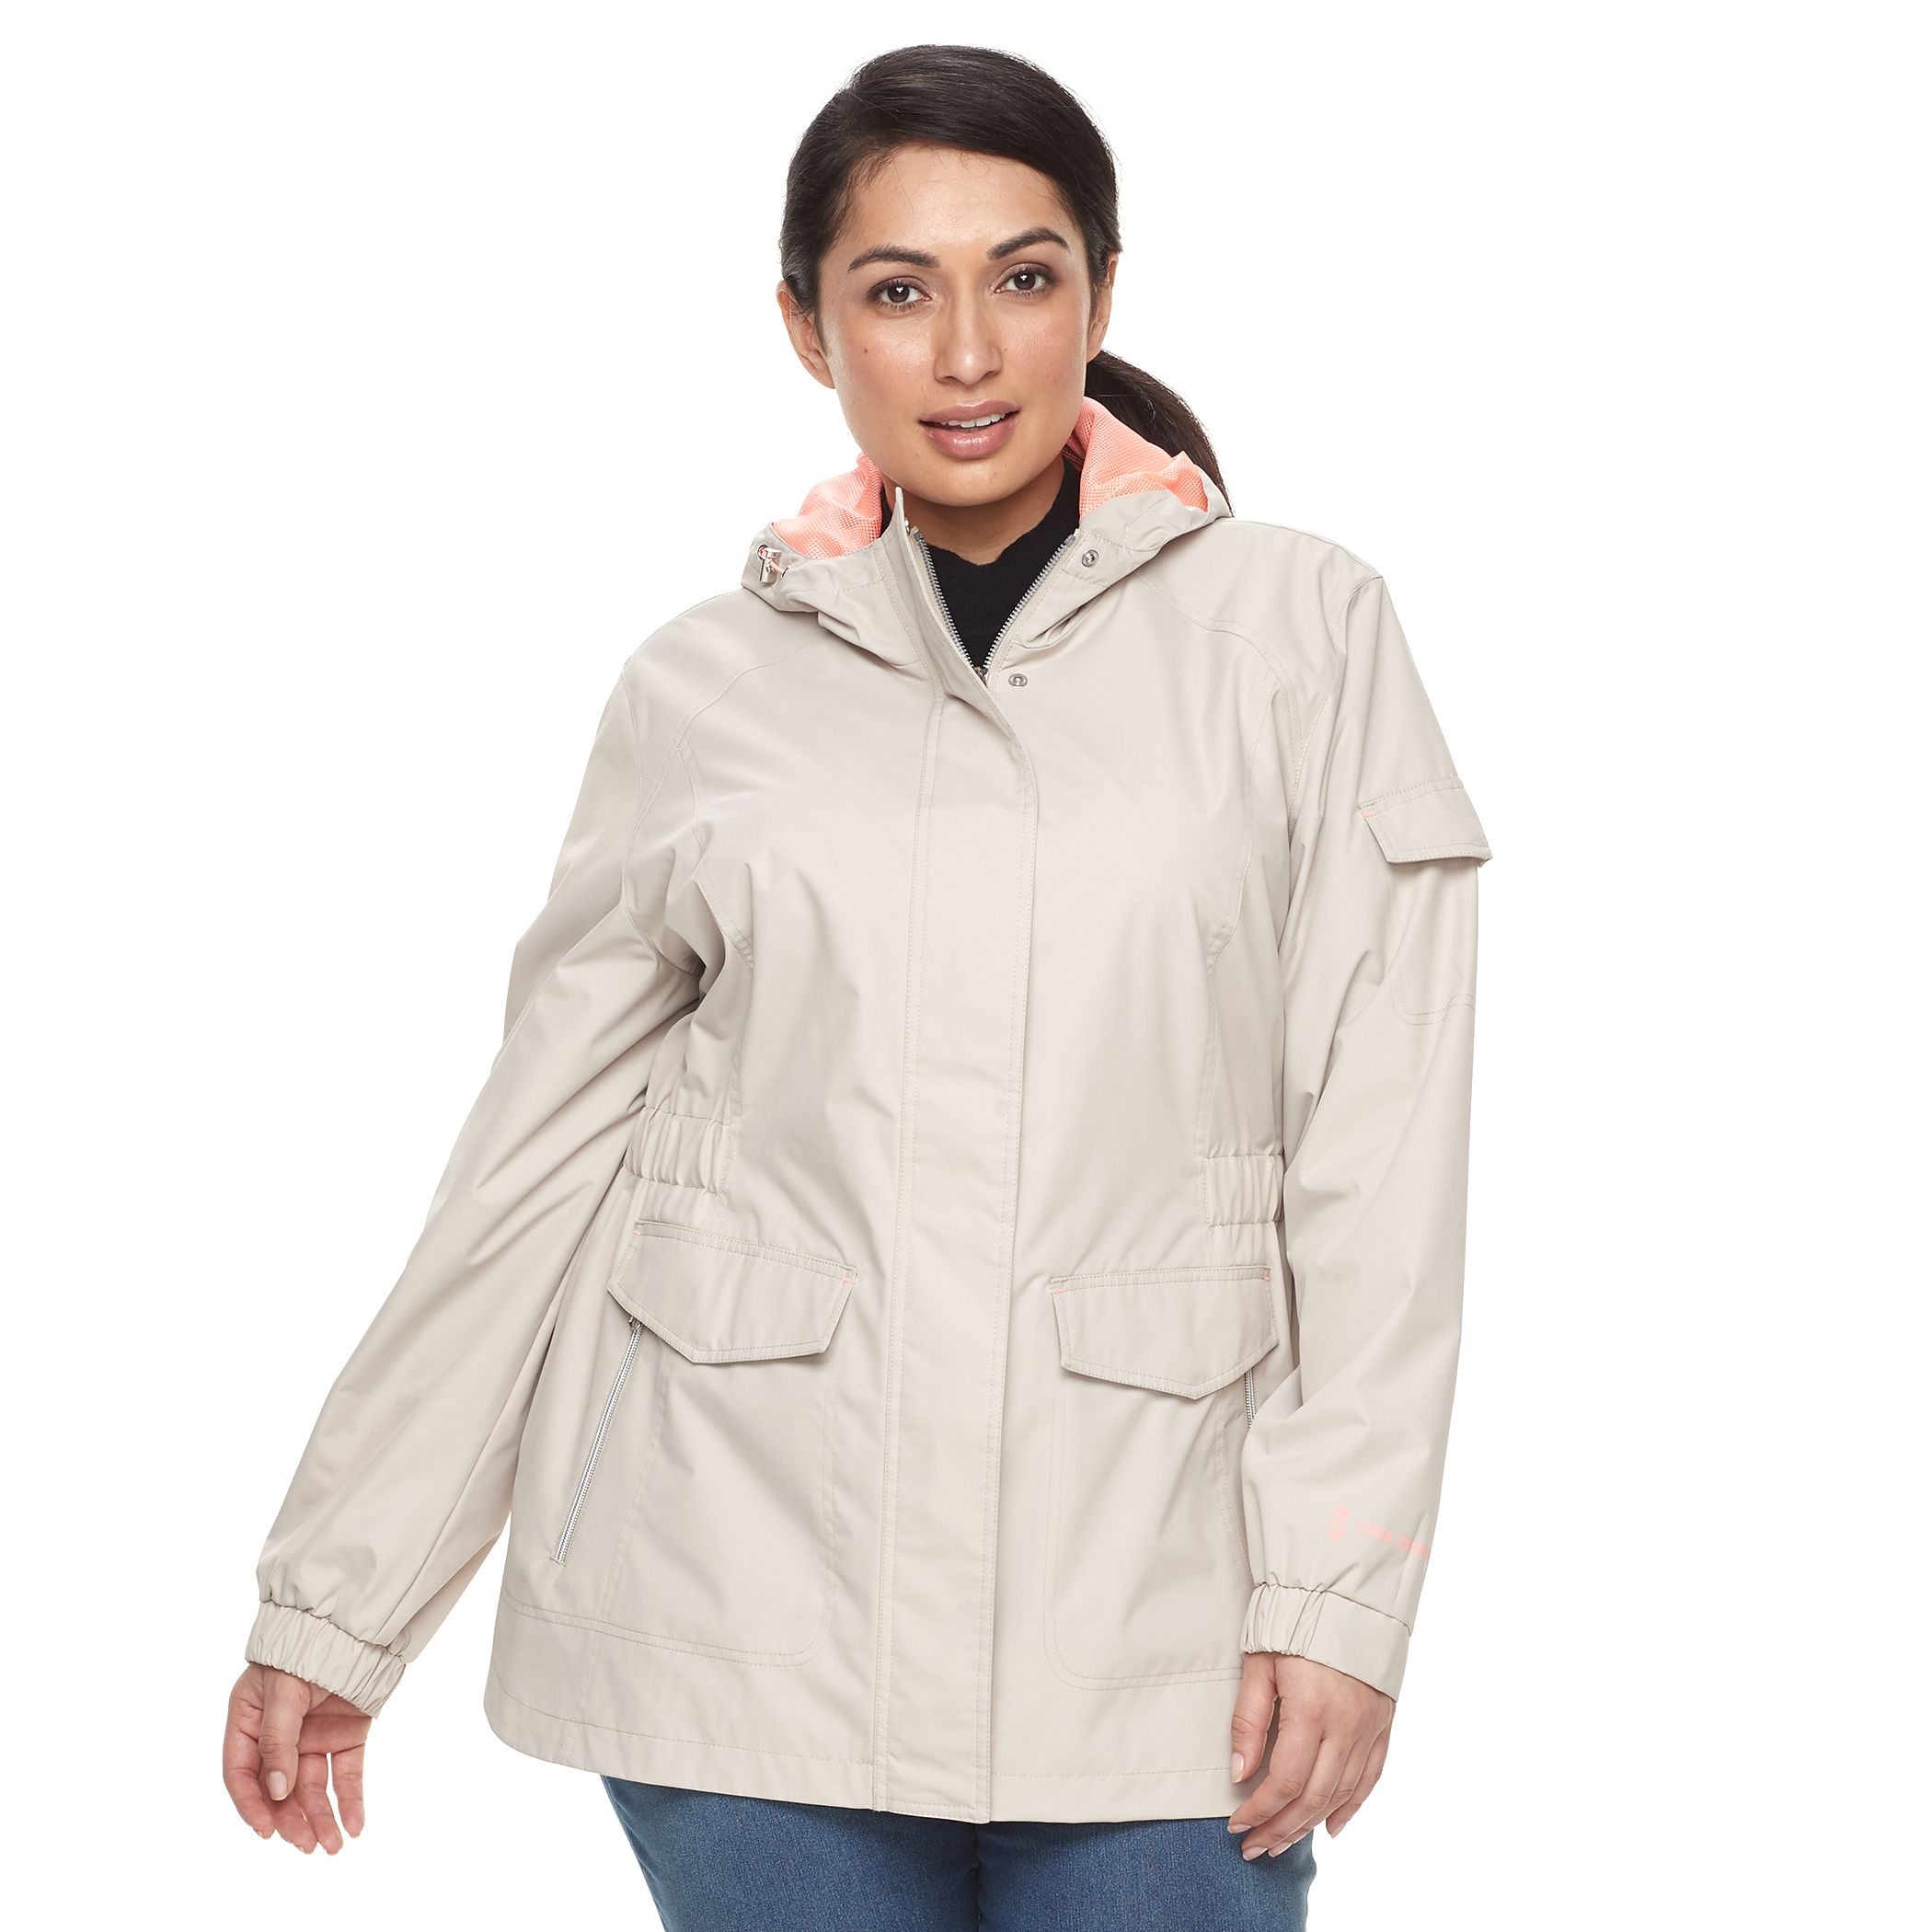 Kohl's Jackets for Women